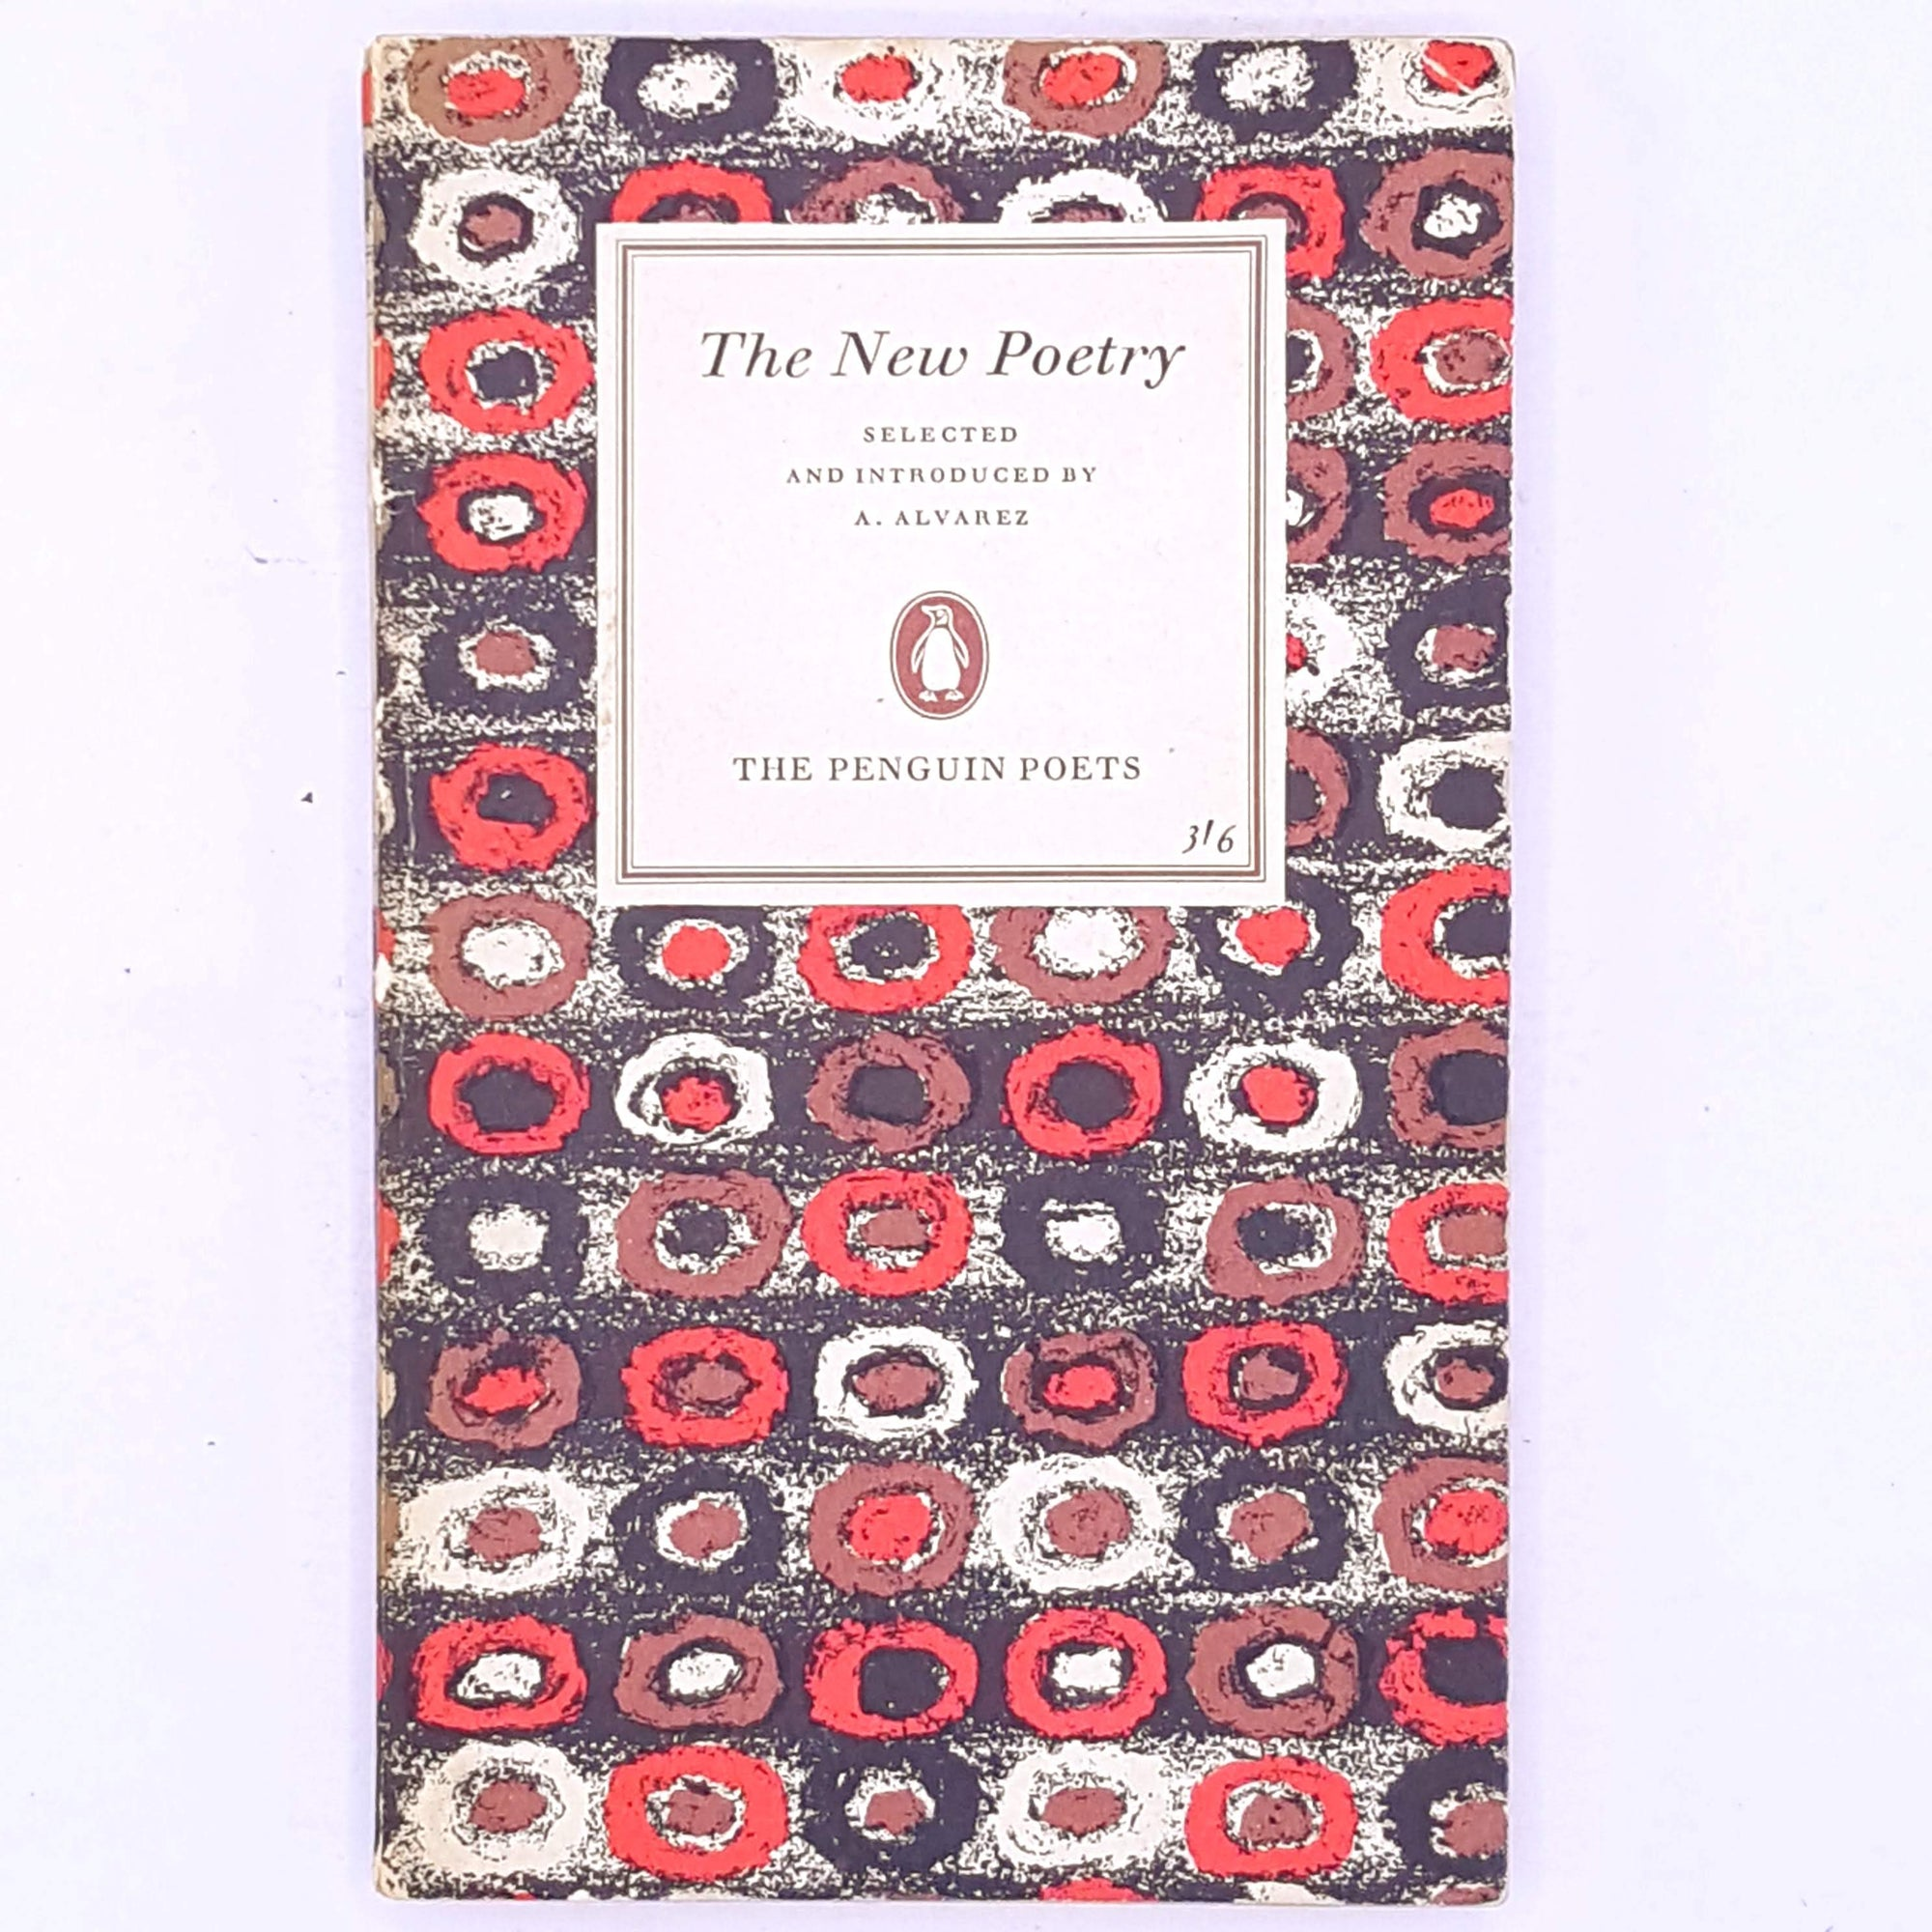 Penguin Poets, The New Poetry, A. Alvarez.